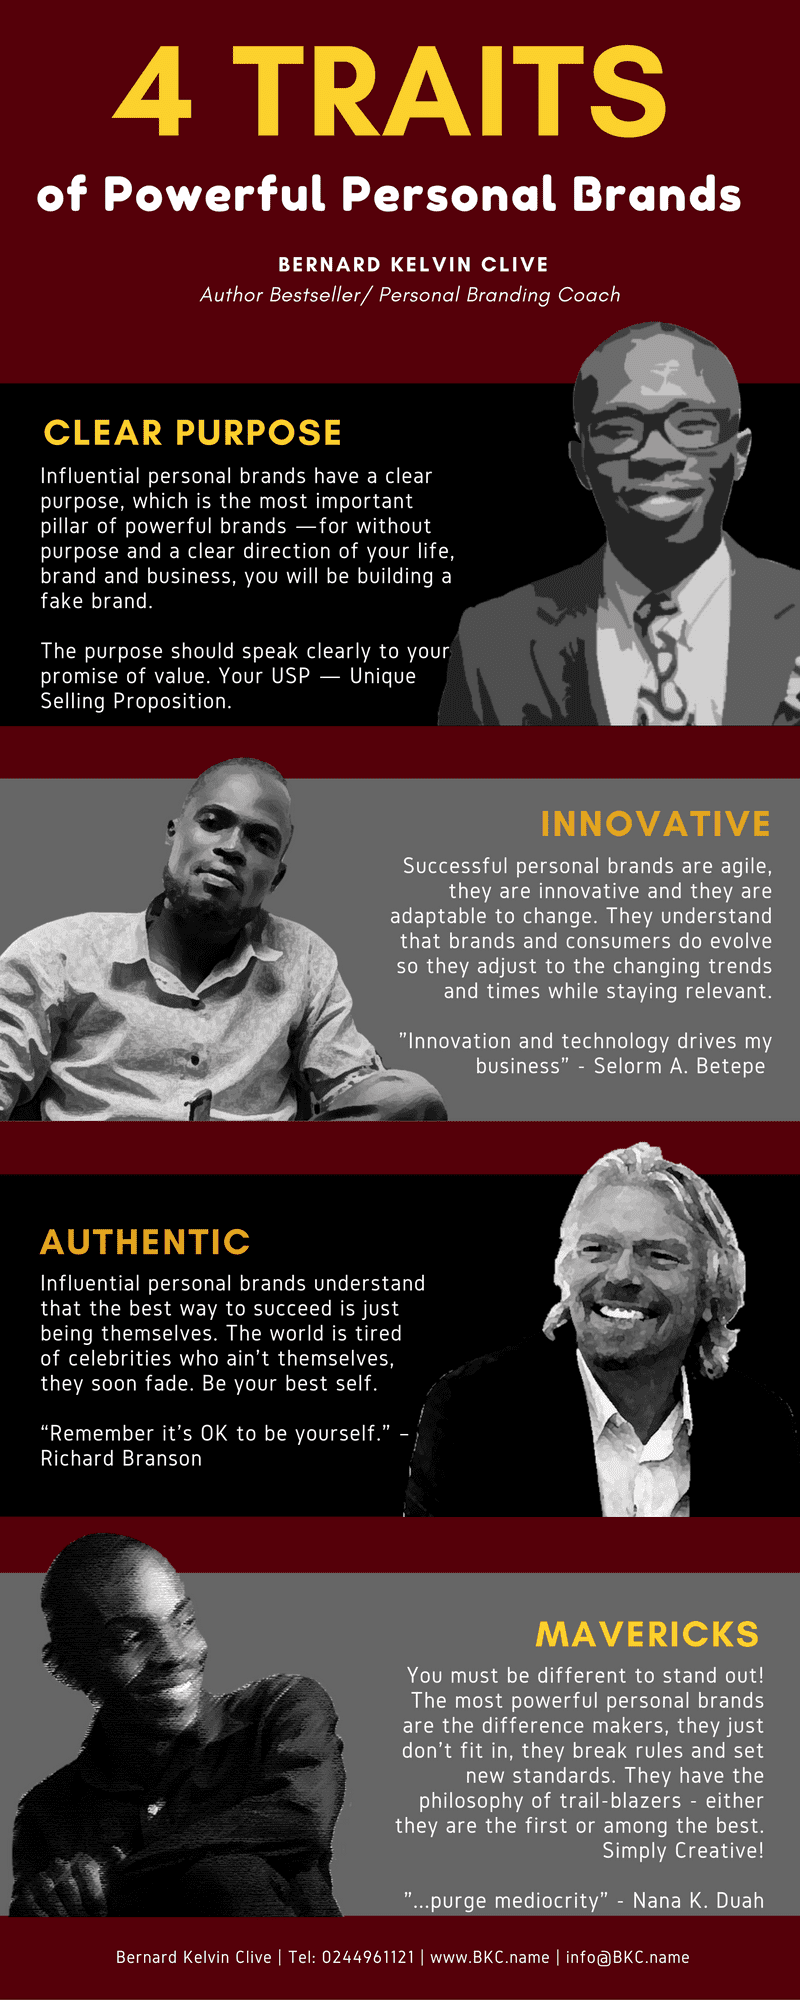 traits of powerful personal brands